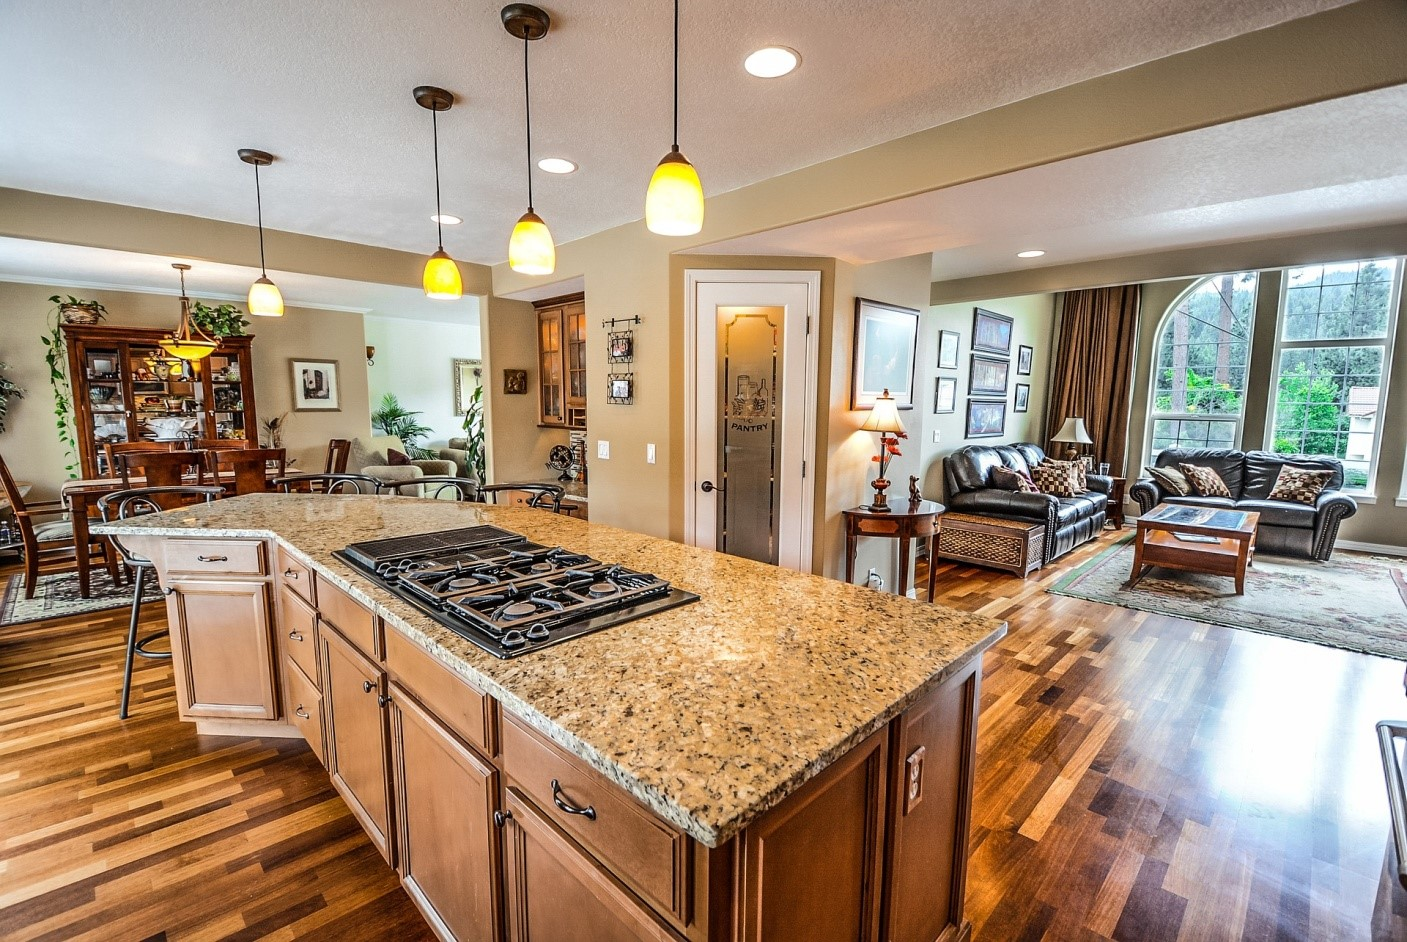 Solid Surface kitchen island overlooking the living room